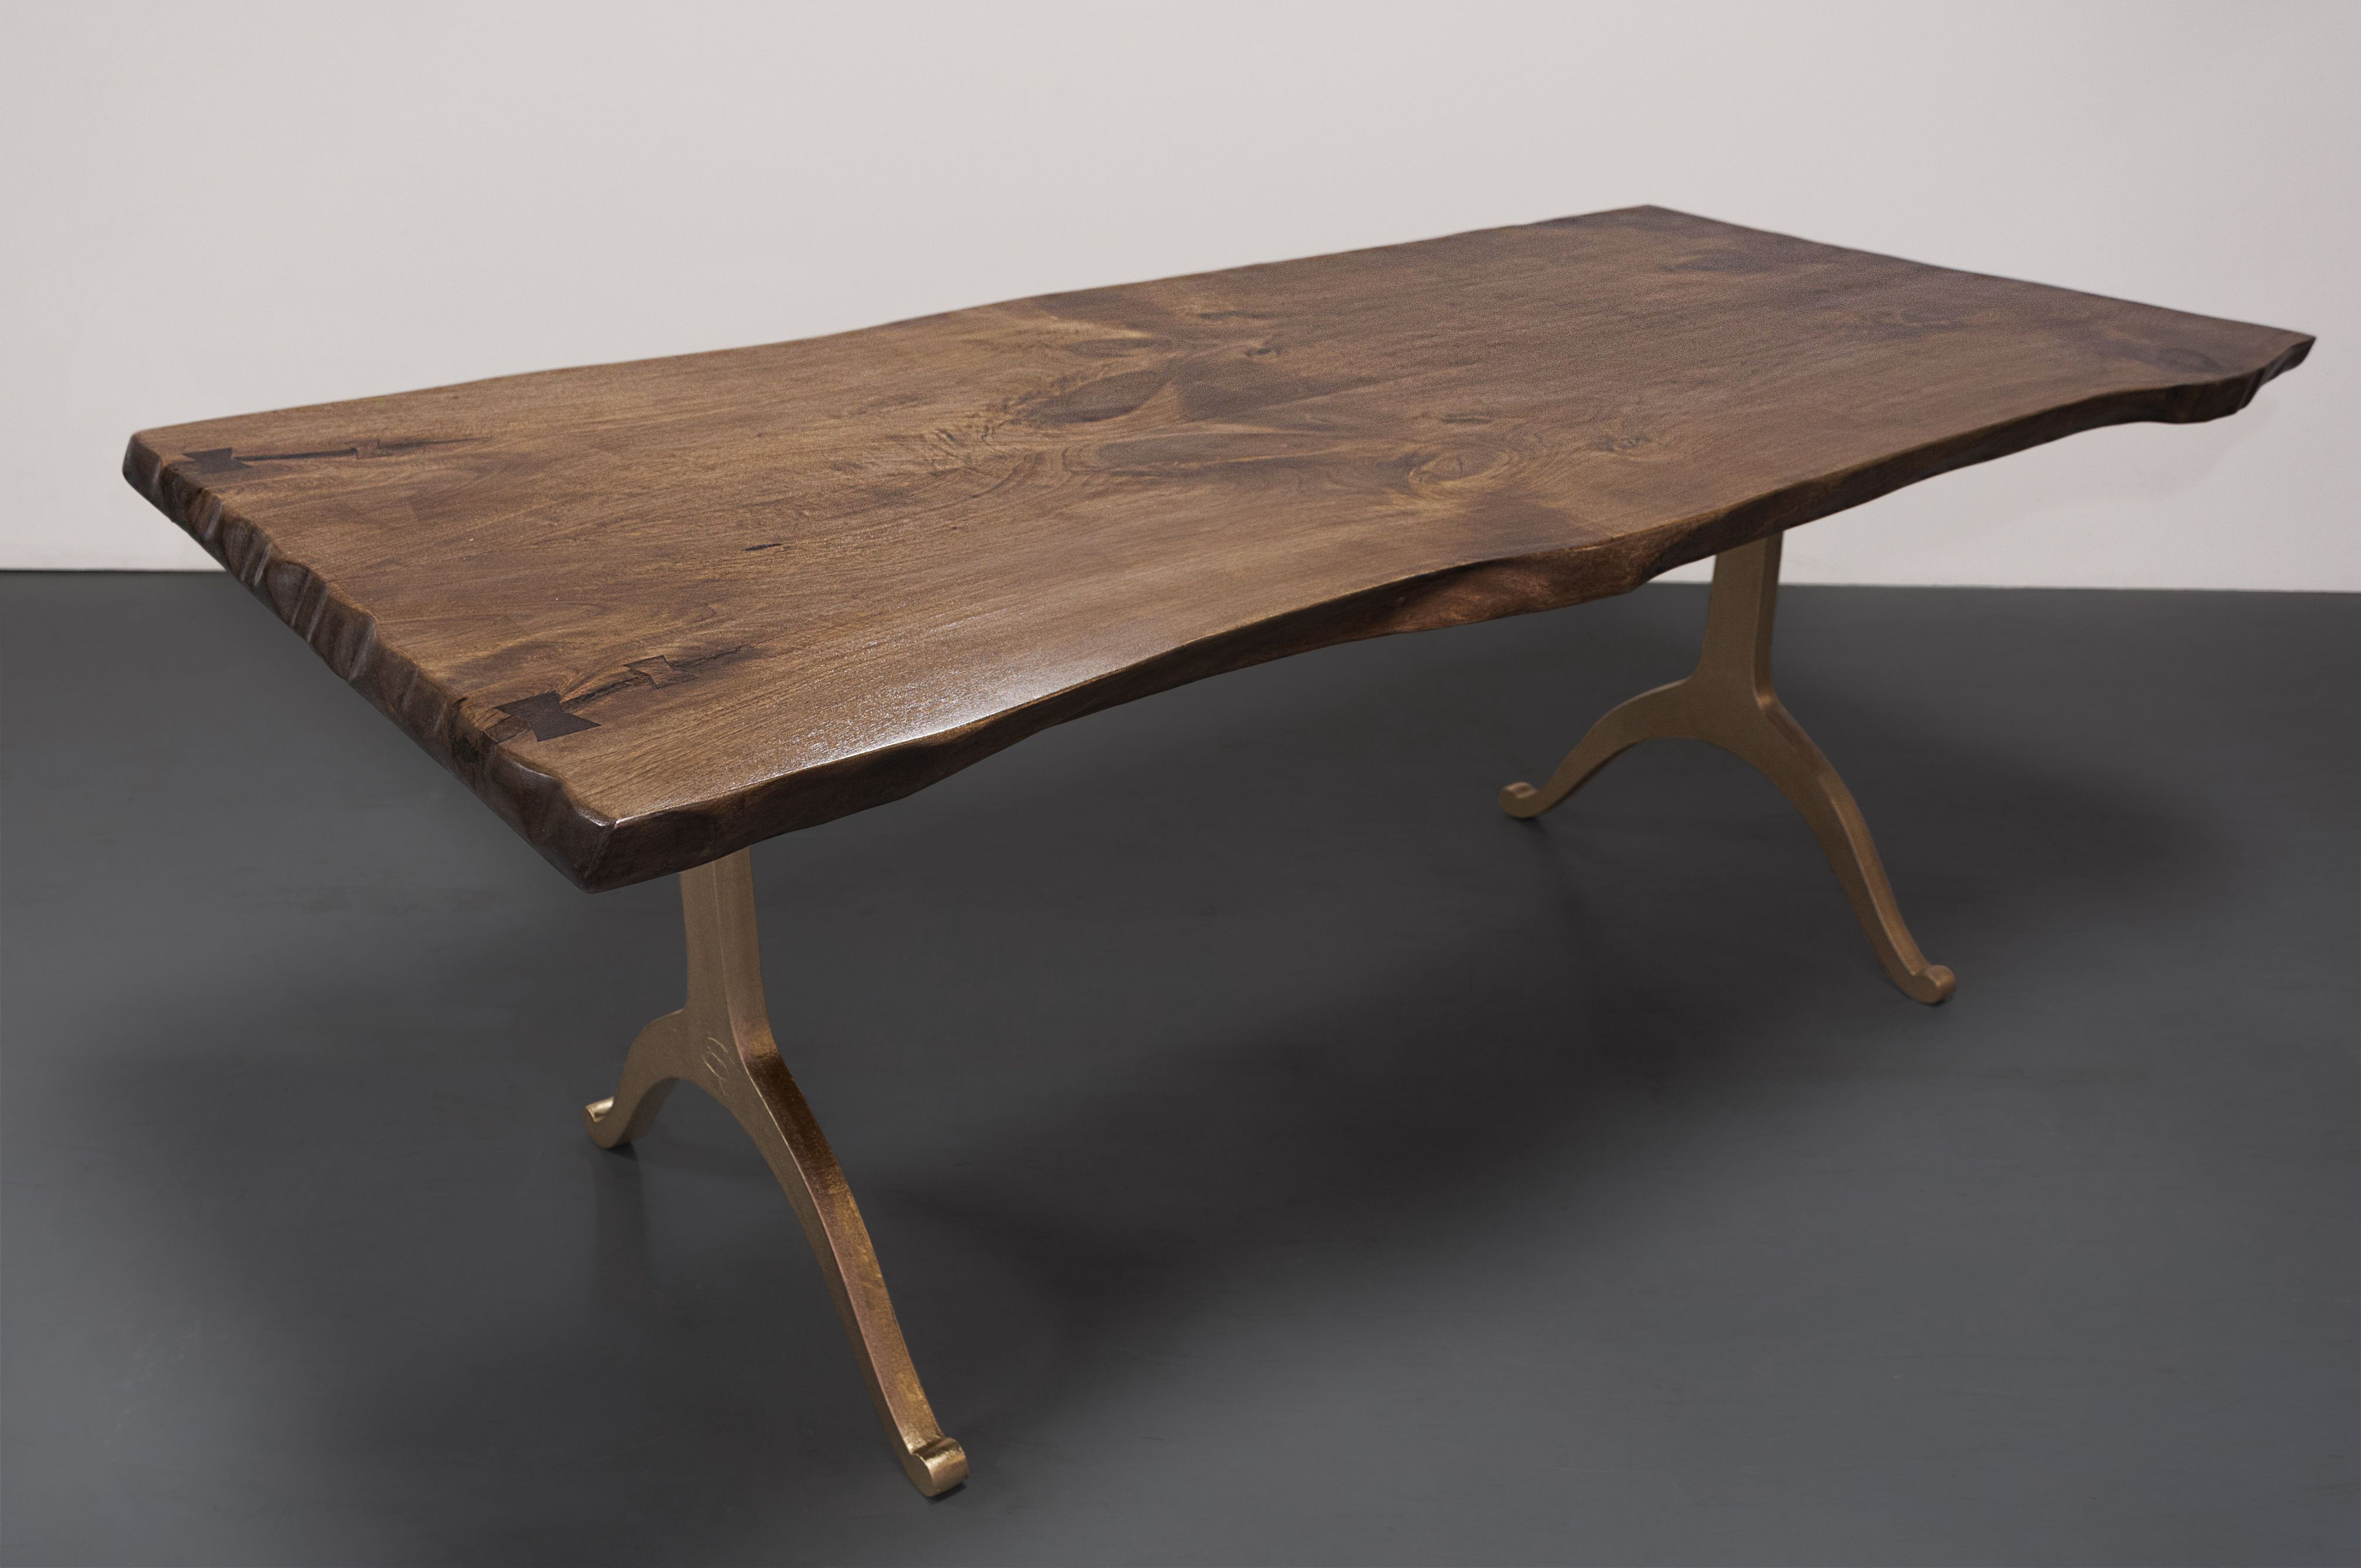 custom live edge butternut industrial style dining table by studio4ri